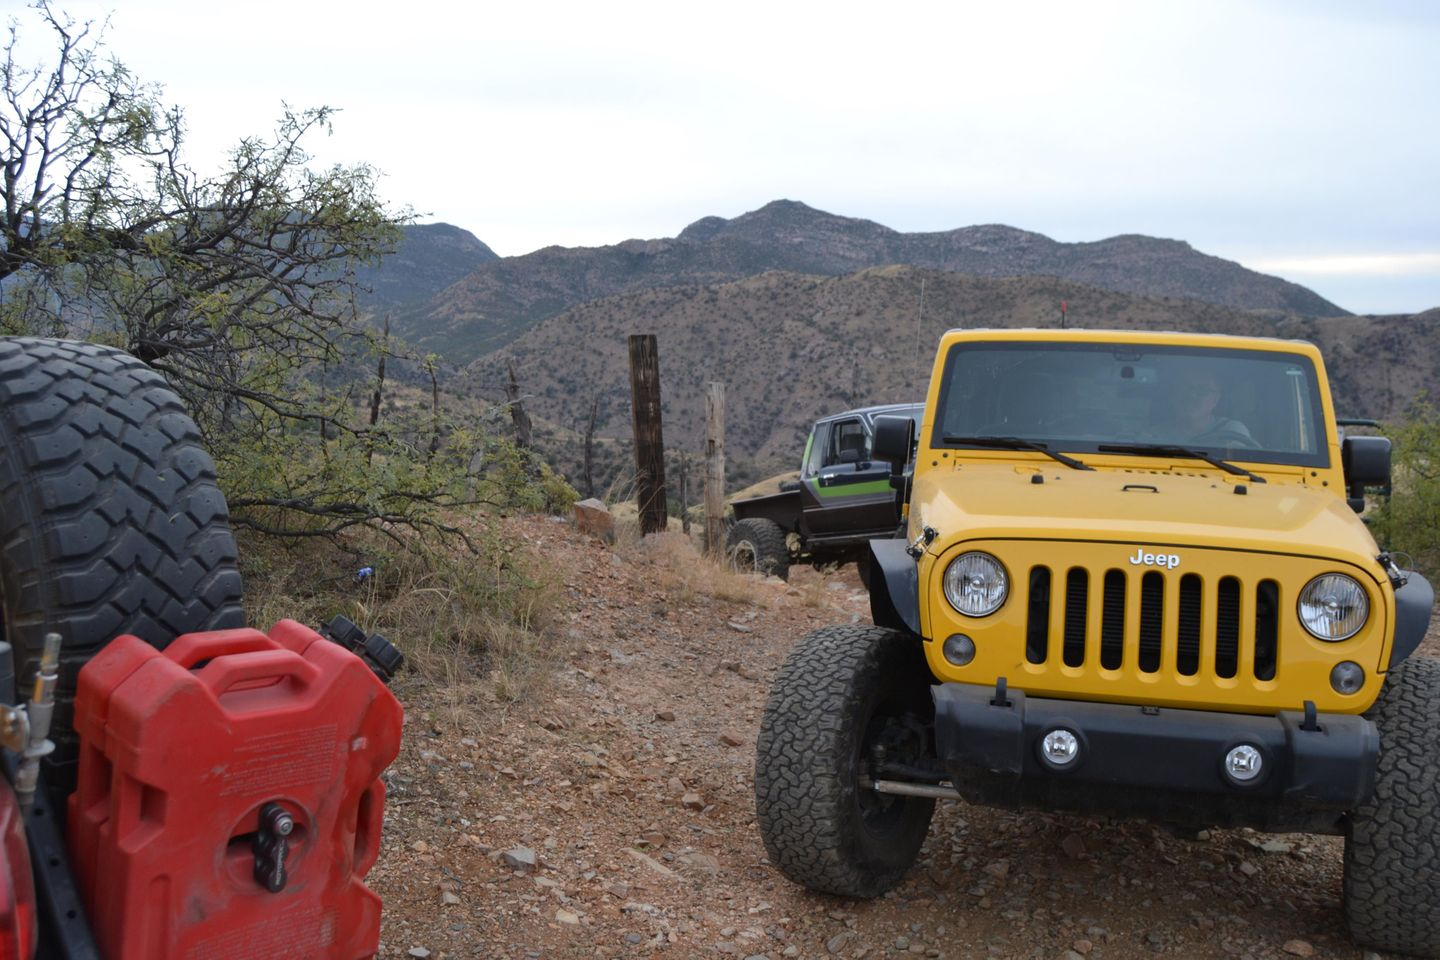 Charouleau Gap / FR# 736 - Waypoint 32: Gate At Top of Switchbacks